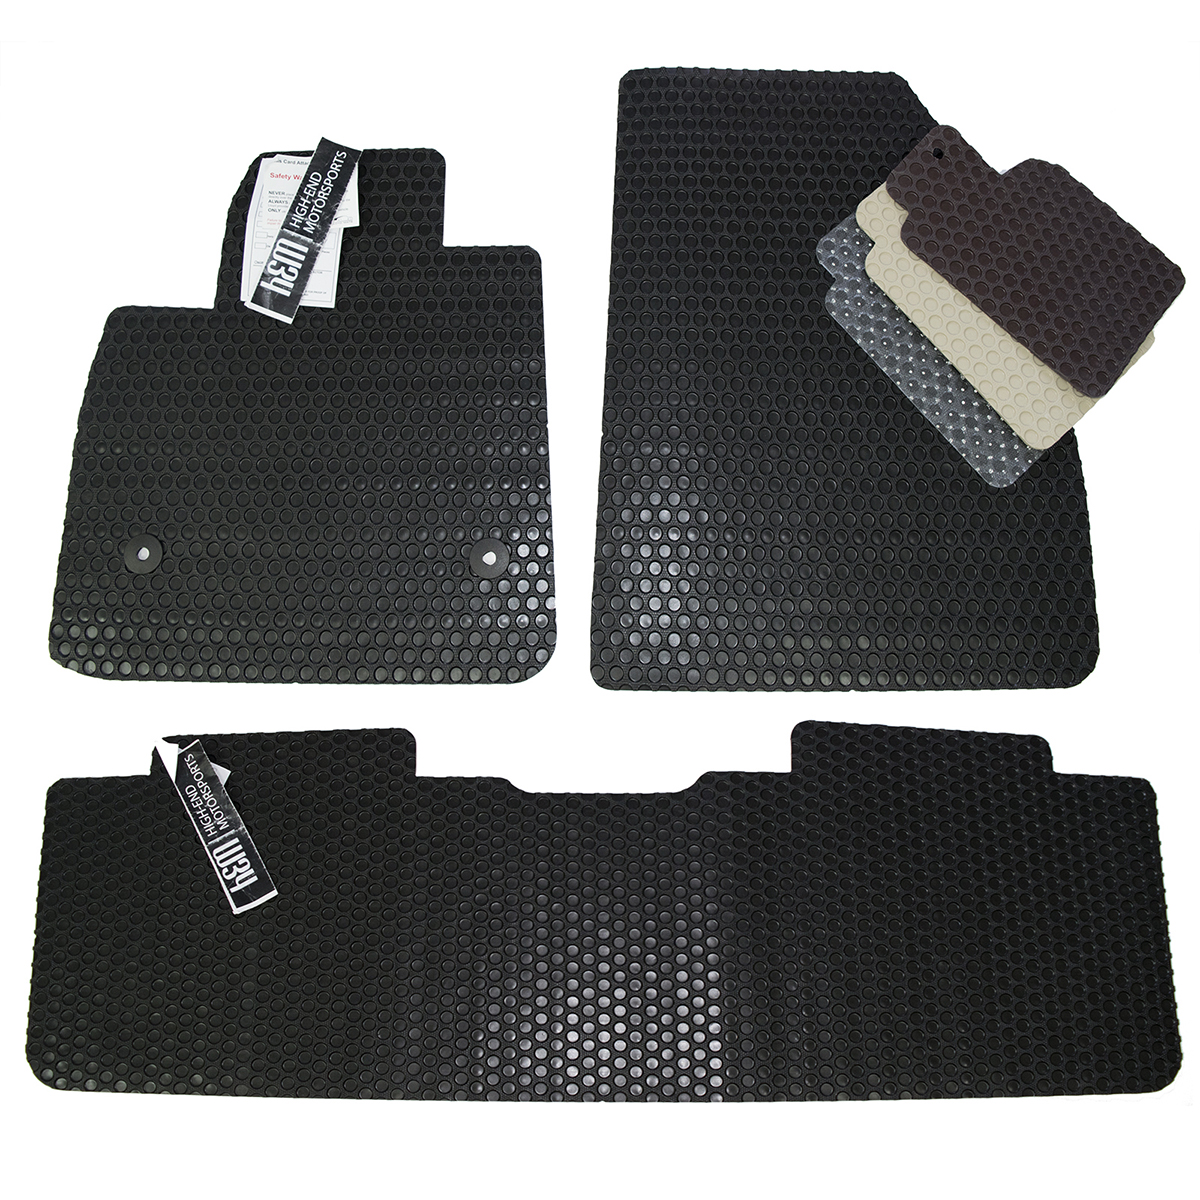 mats unvs floorliner pcs for waterproof floor honda carpets rubber car all fm ws season uns